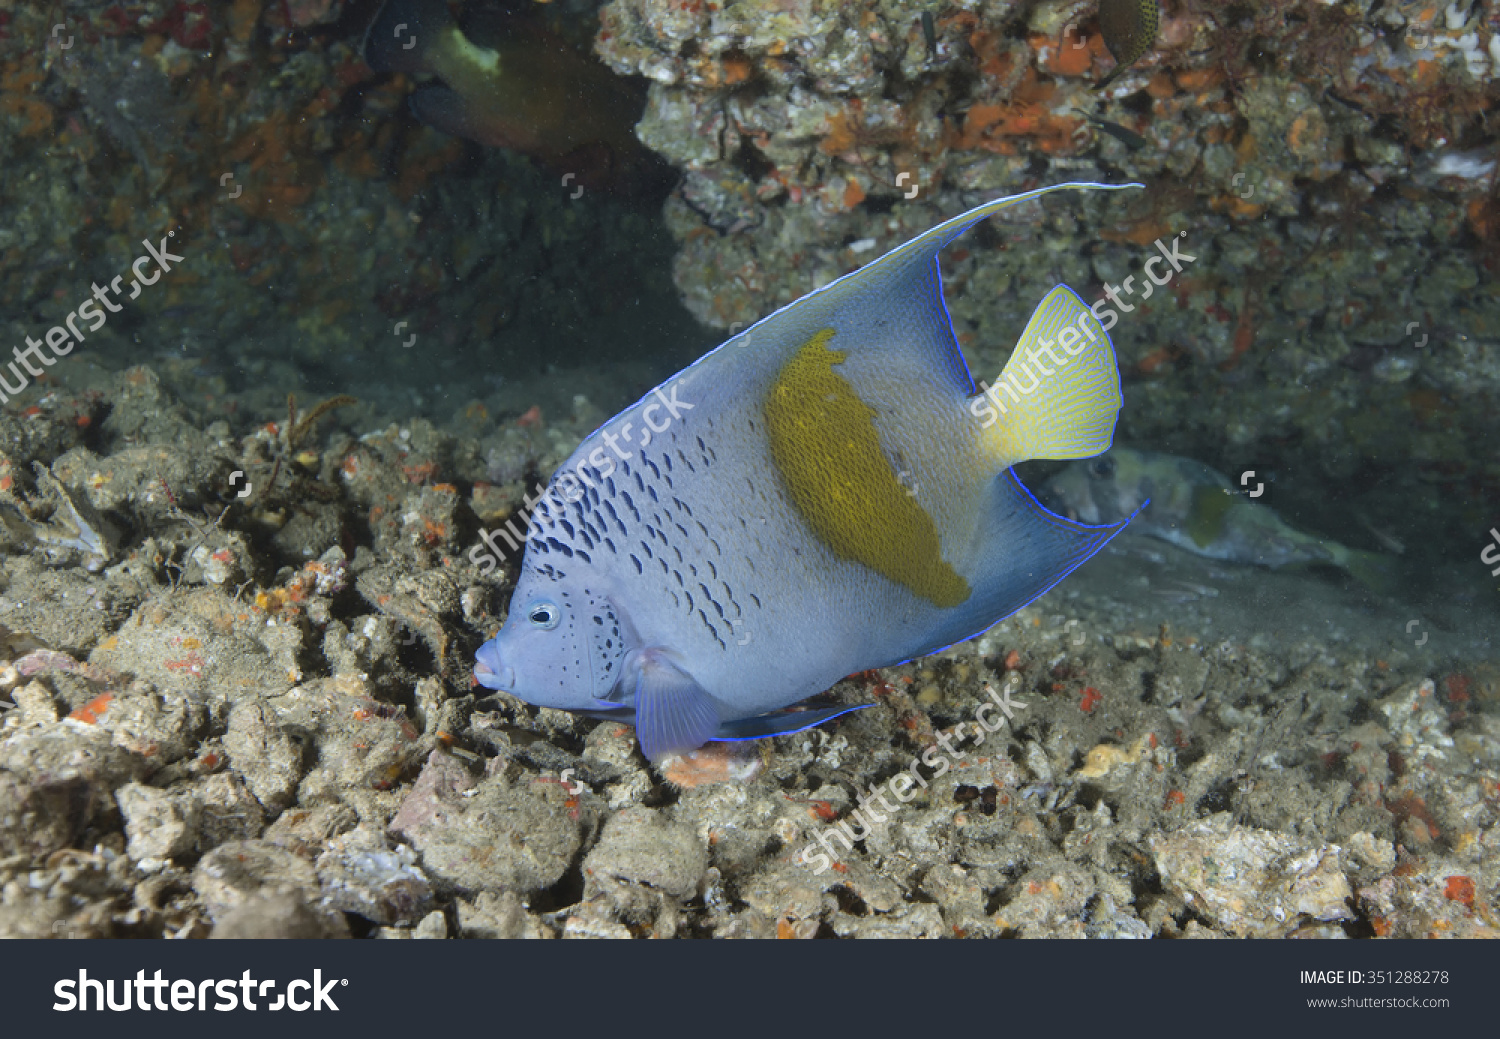 A Single Arabian Angelfish (Pomacanthus Asfur) Tropical Fish.